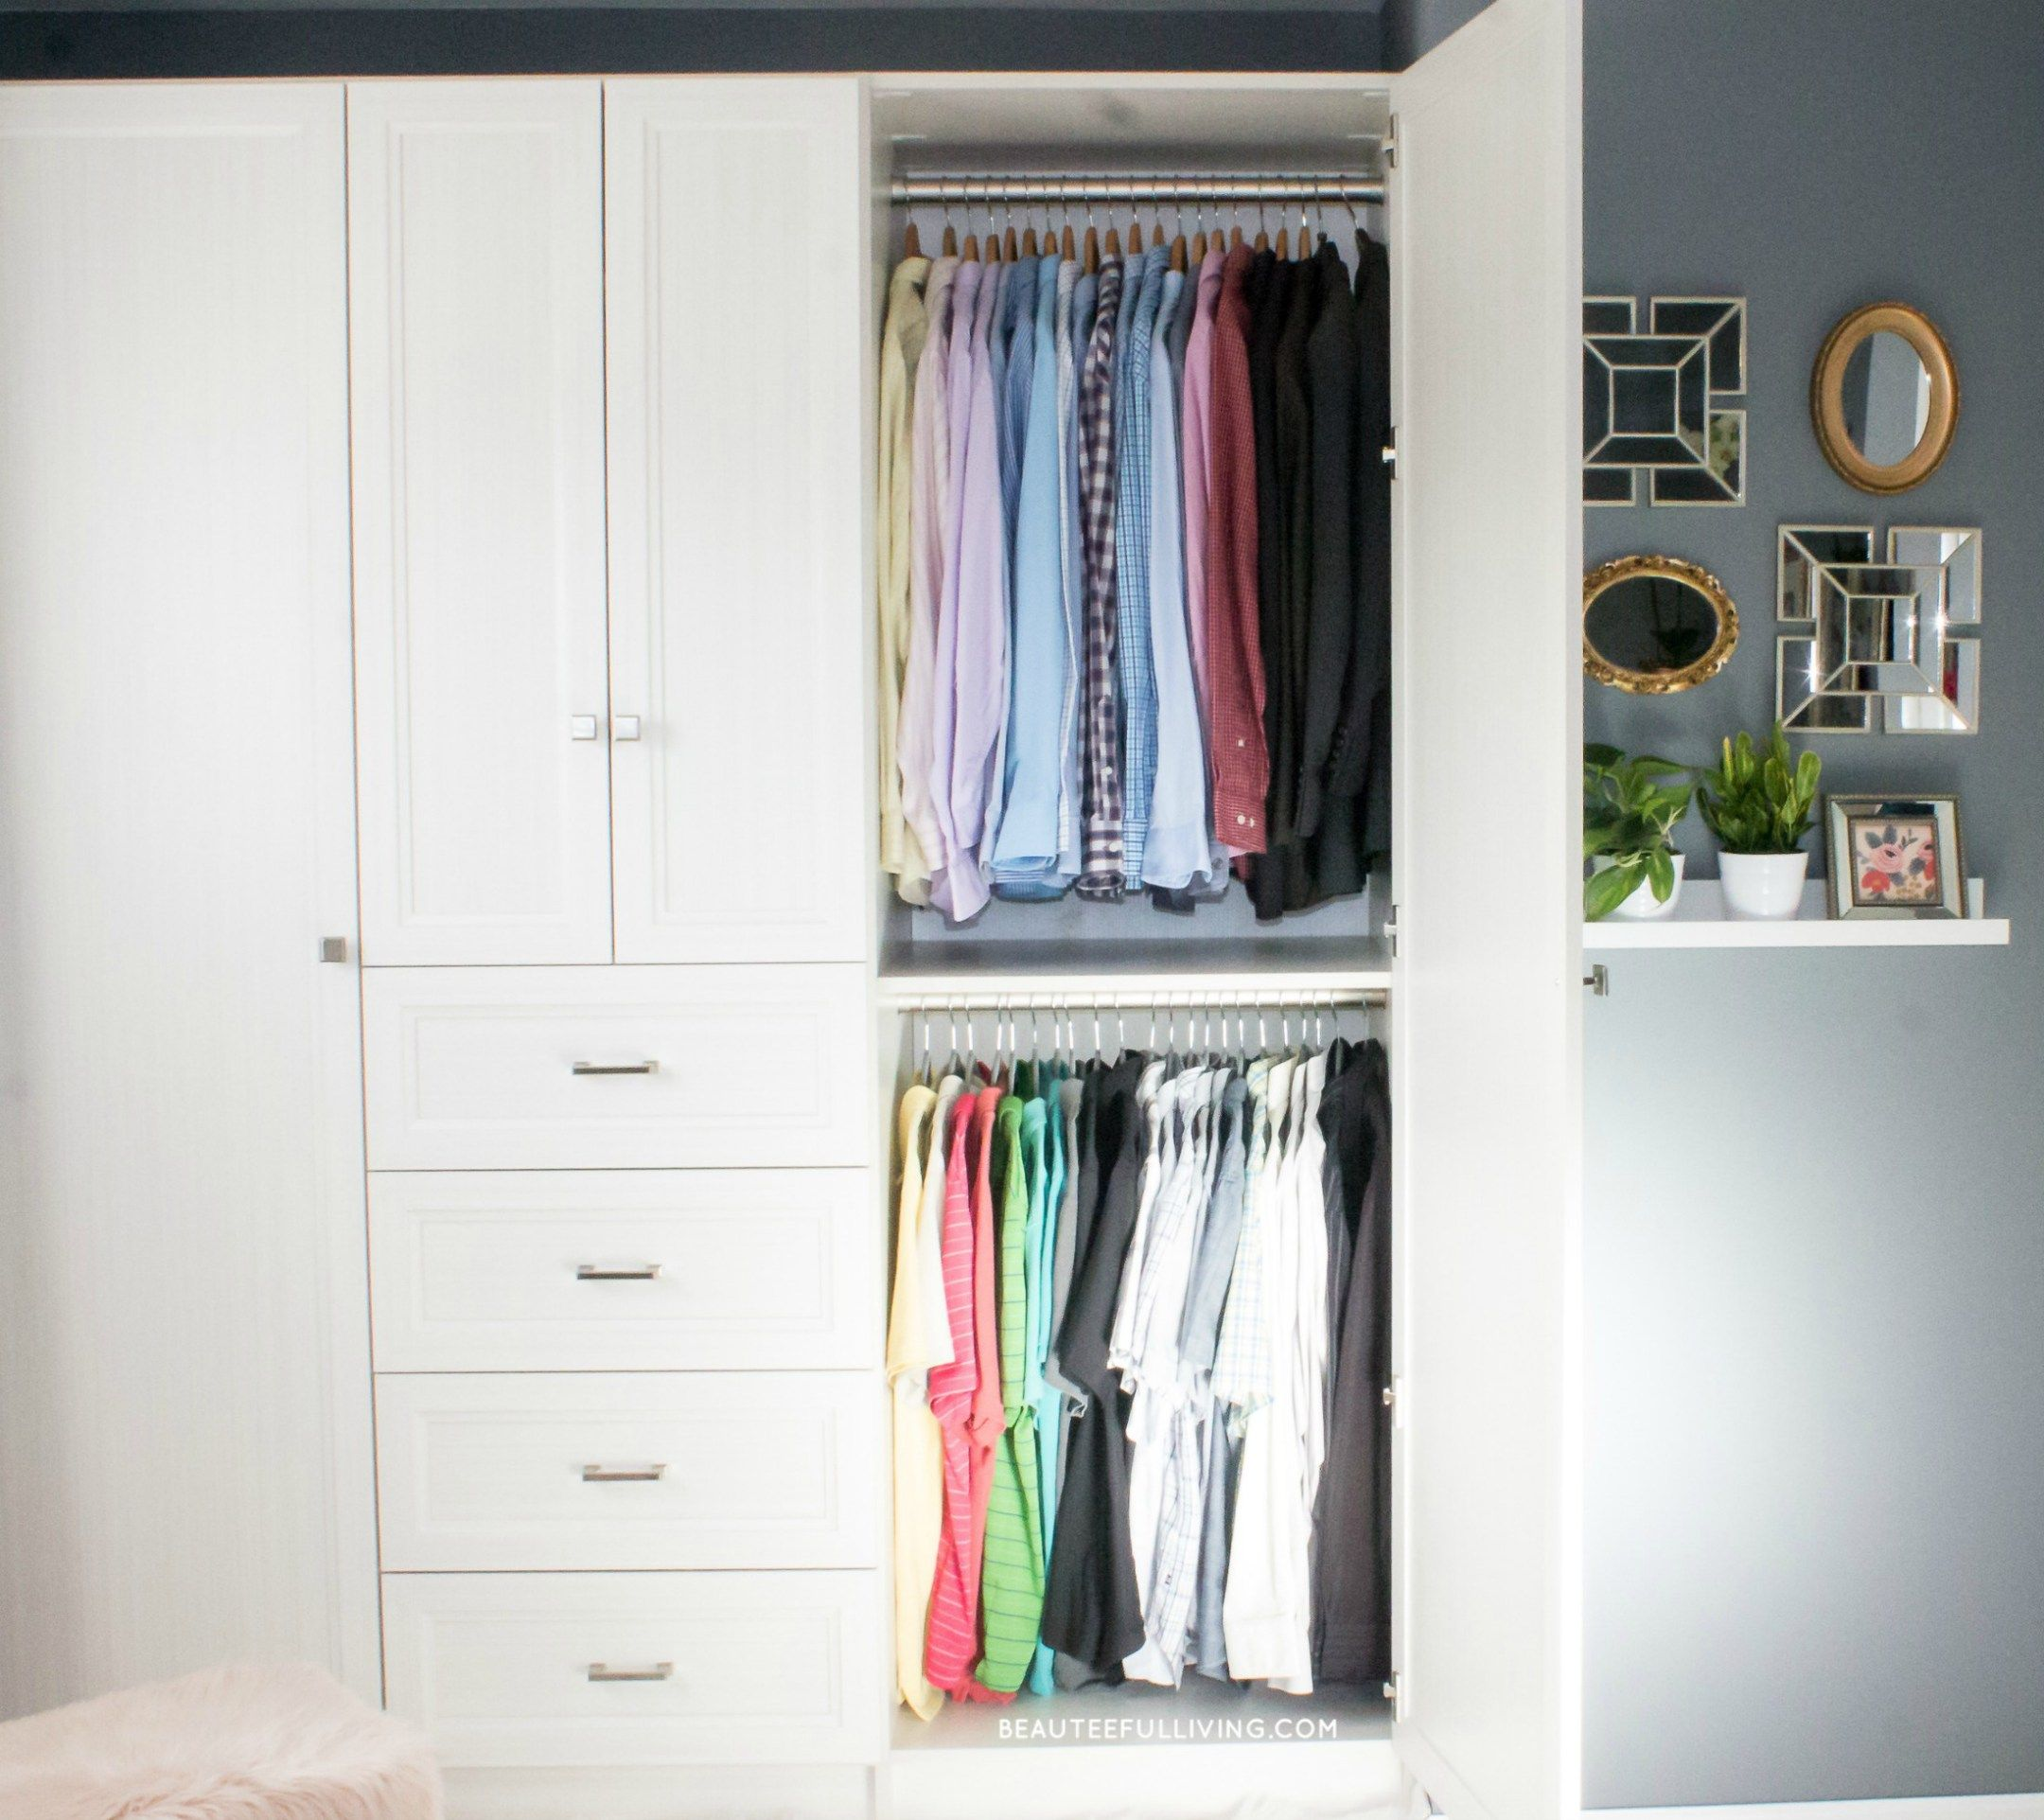 Transformed sliding door closet to custom armoire